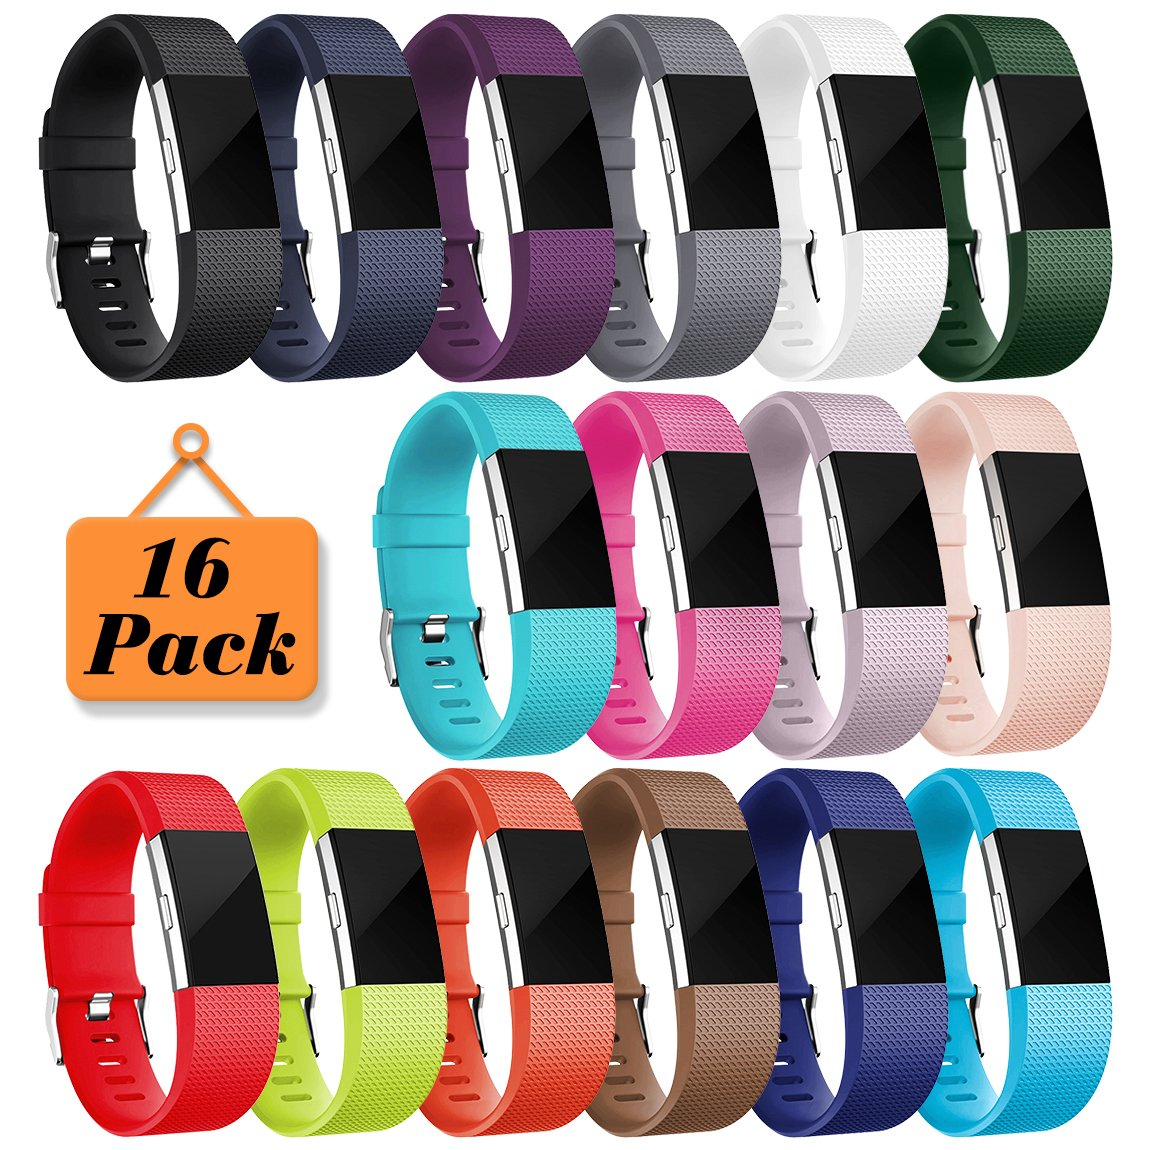 Maledan Bands for Fitbit Charge 2, 16 Pack